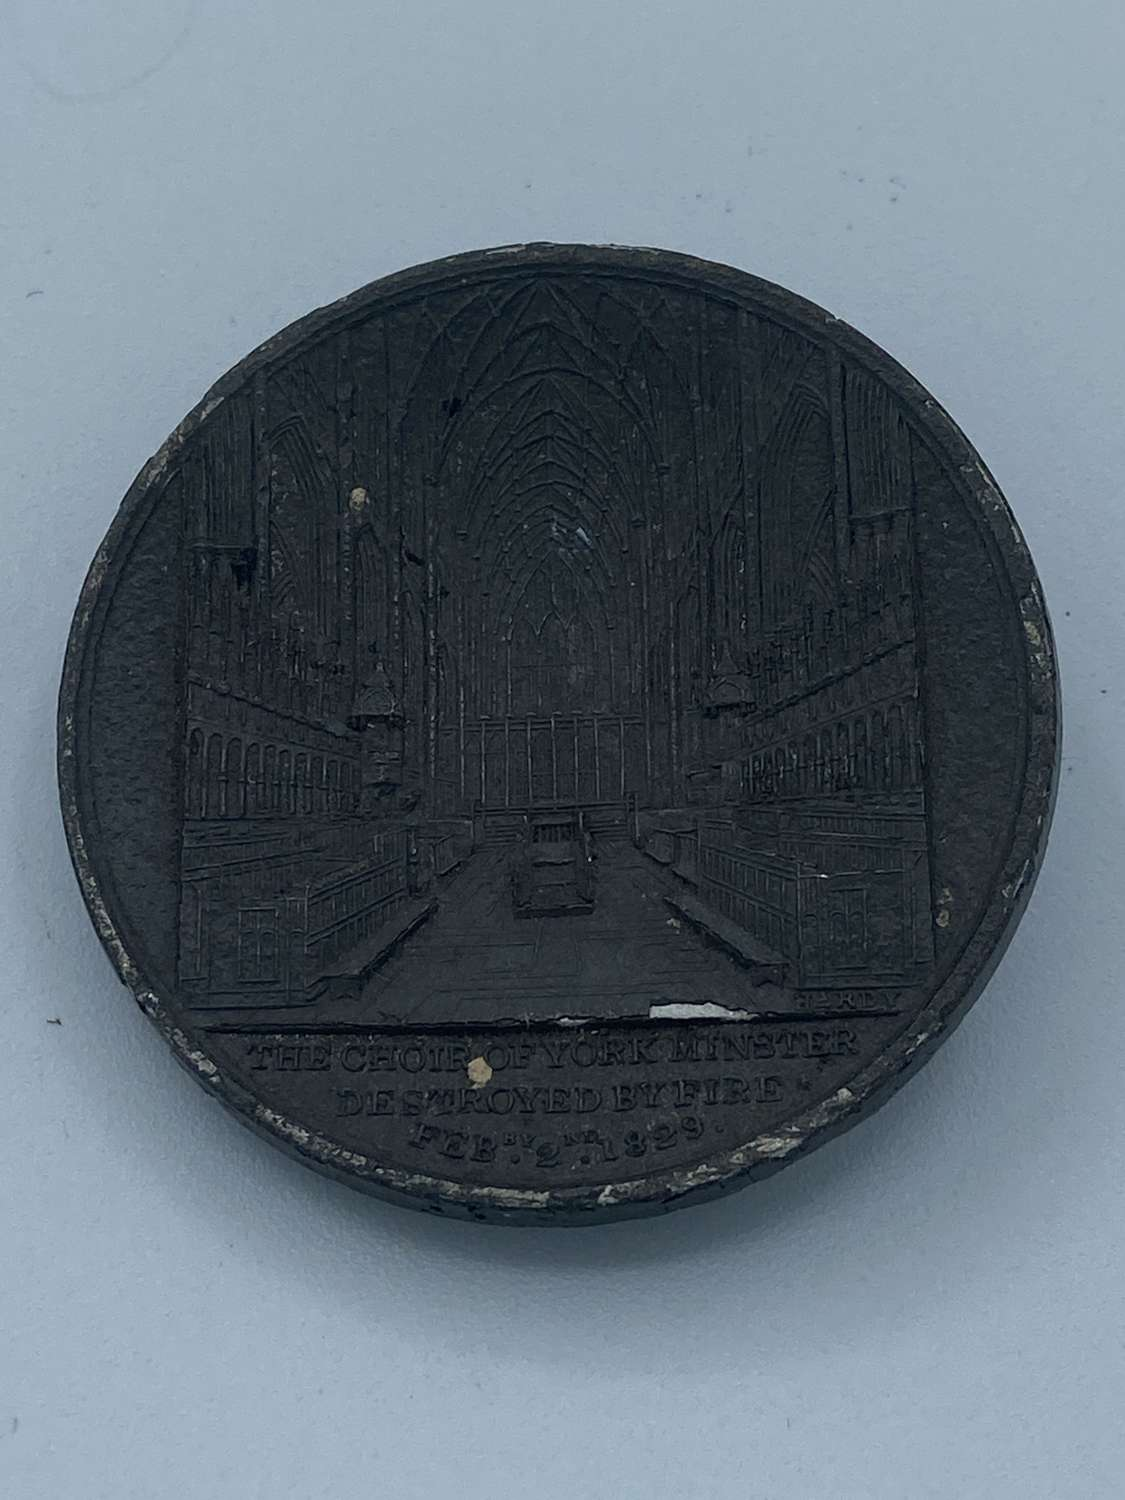 Antique York Minster 1829 Choir Destroyed By Fire By Hardy Medal